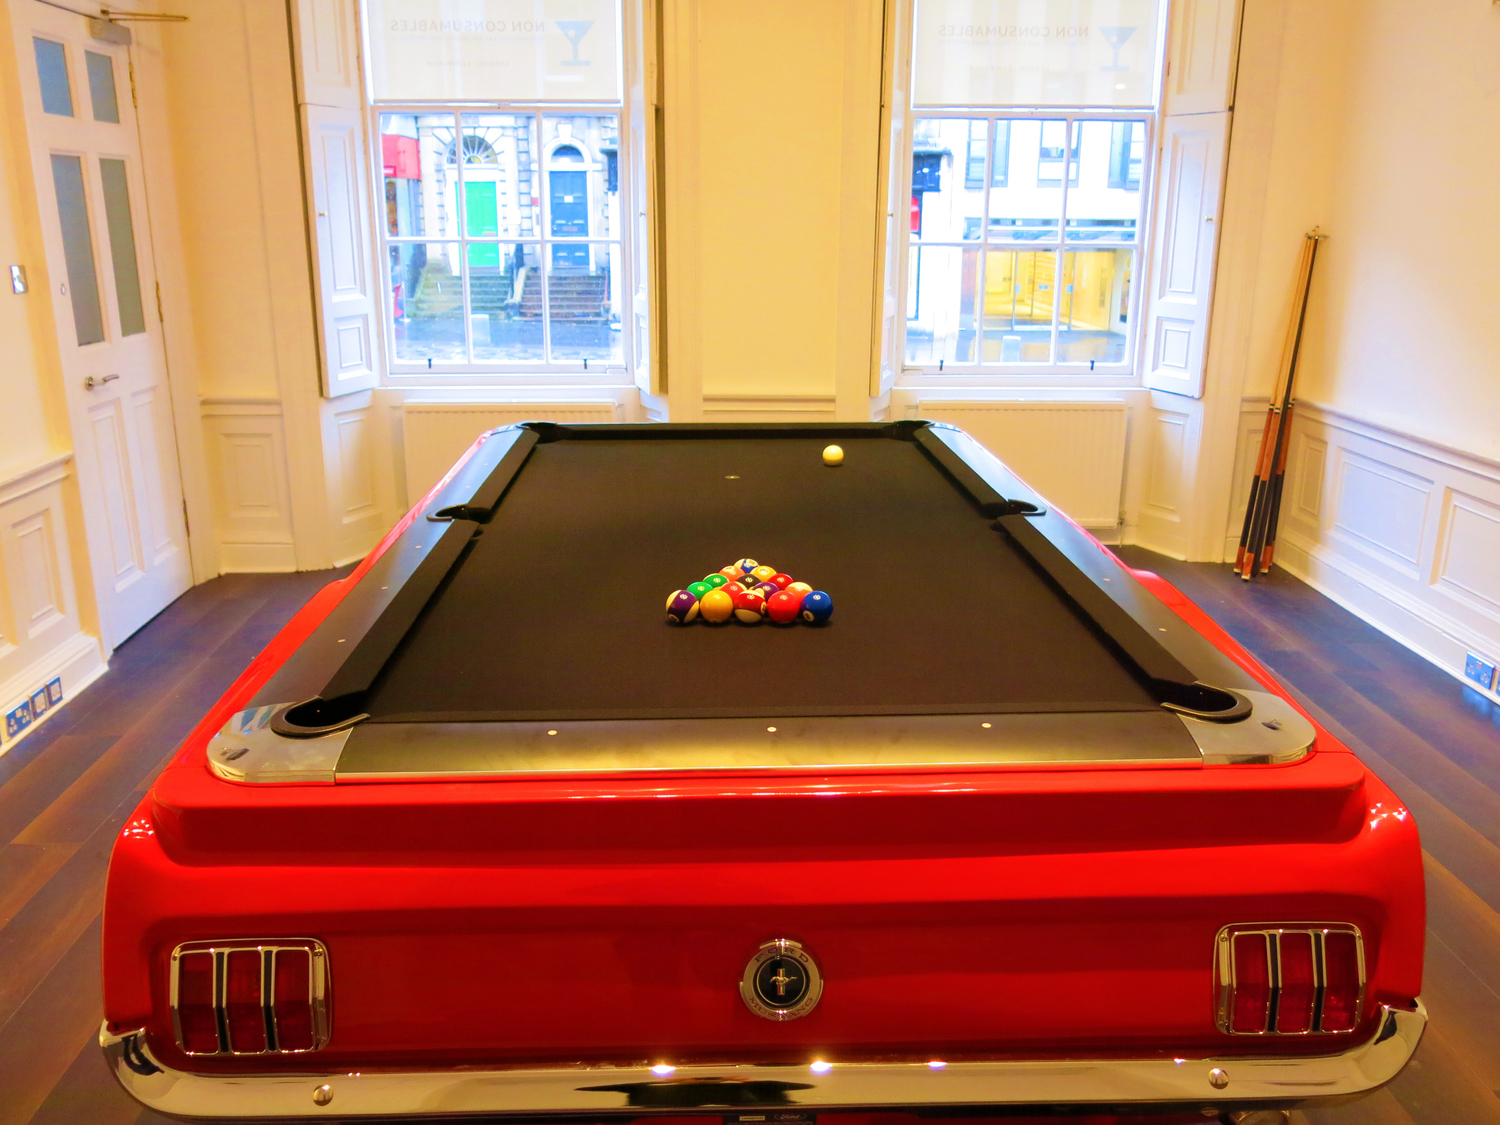 Ford Mustang Car Pool Tables UK - Mustang pool table